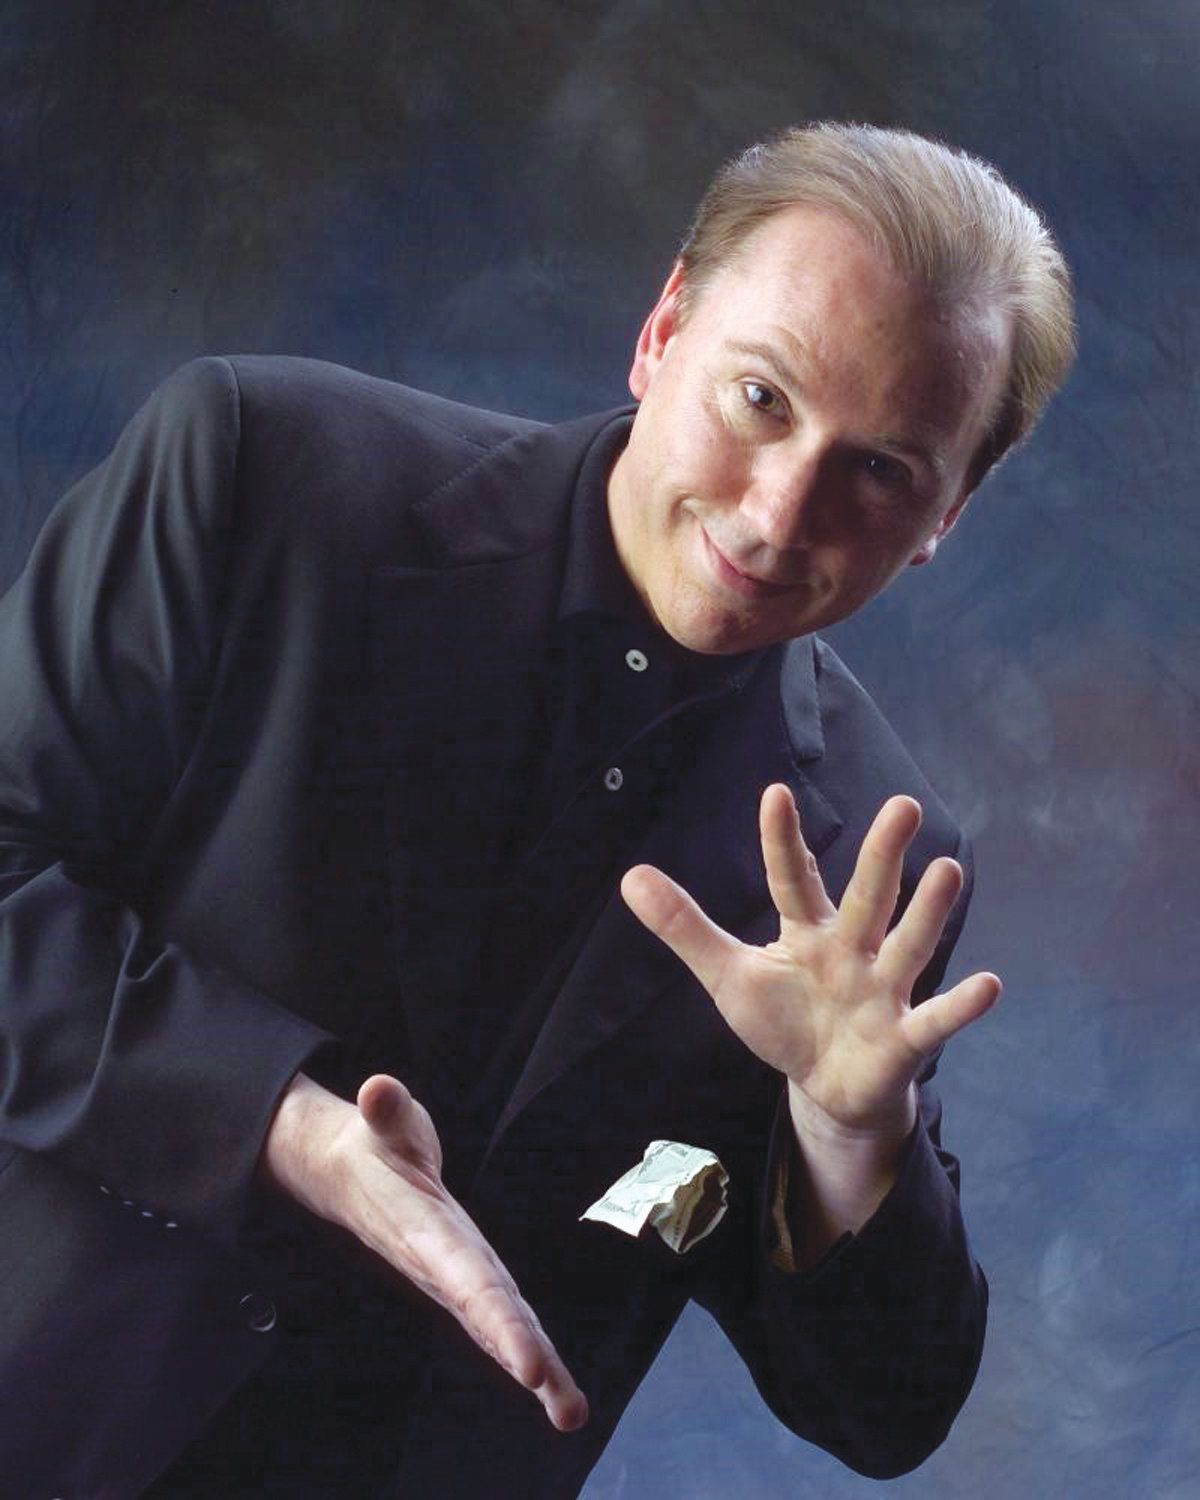 HOW DID HE DO THAT? Jared DuBois, a well-known magical entertainer and mentalist, will perform during this year's event.